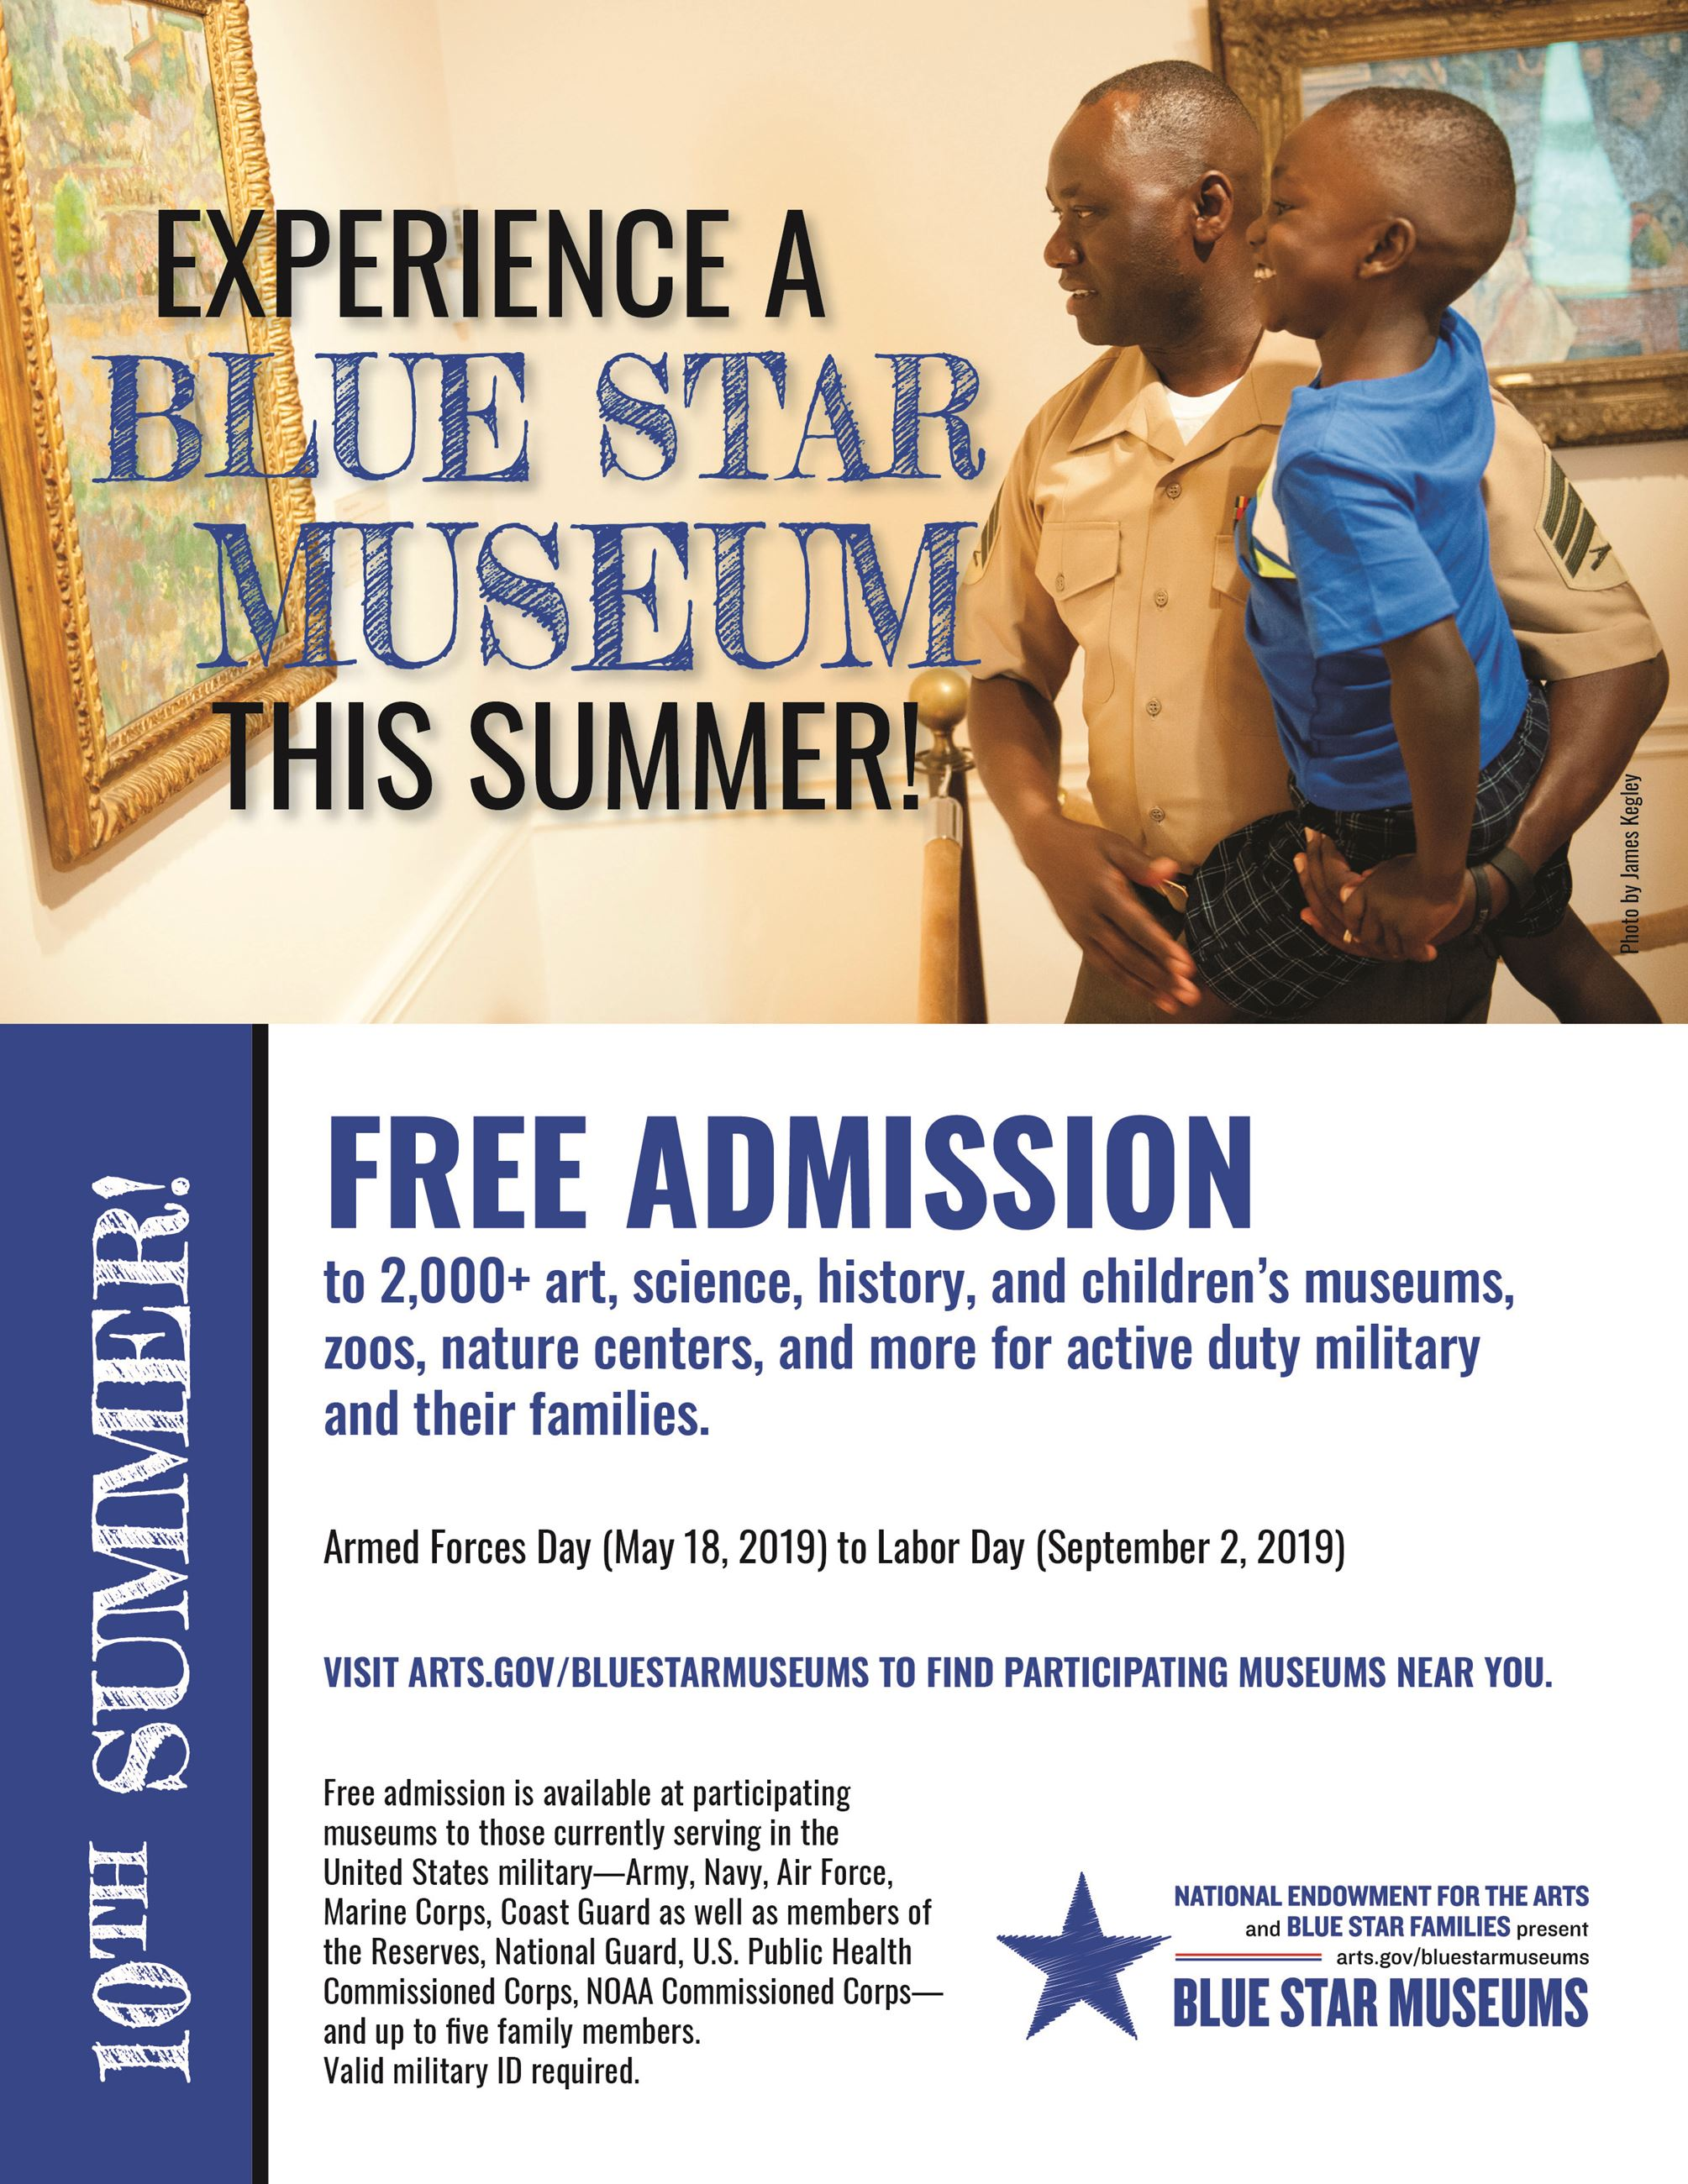 Experience a Blue Star Museum this Summer. Free Admission to 2,000+ art, science, history and childr Opens in new window